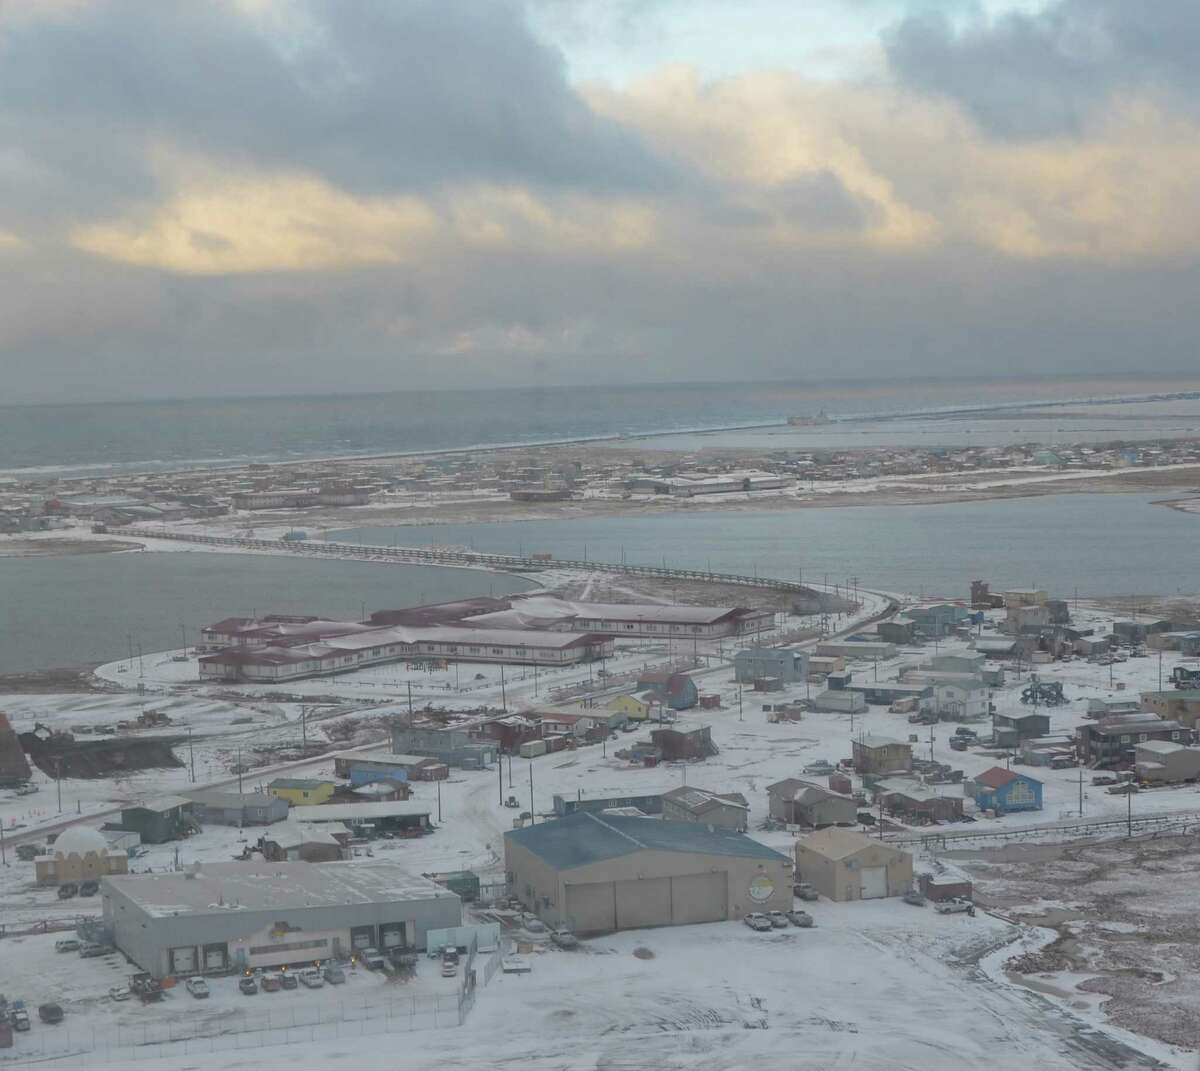 Barrow, Alaska, covers about 22 square miles and has just over 4,000 residents. Some native Alaskans are taking a pragmatic approach to offshore drilling.